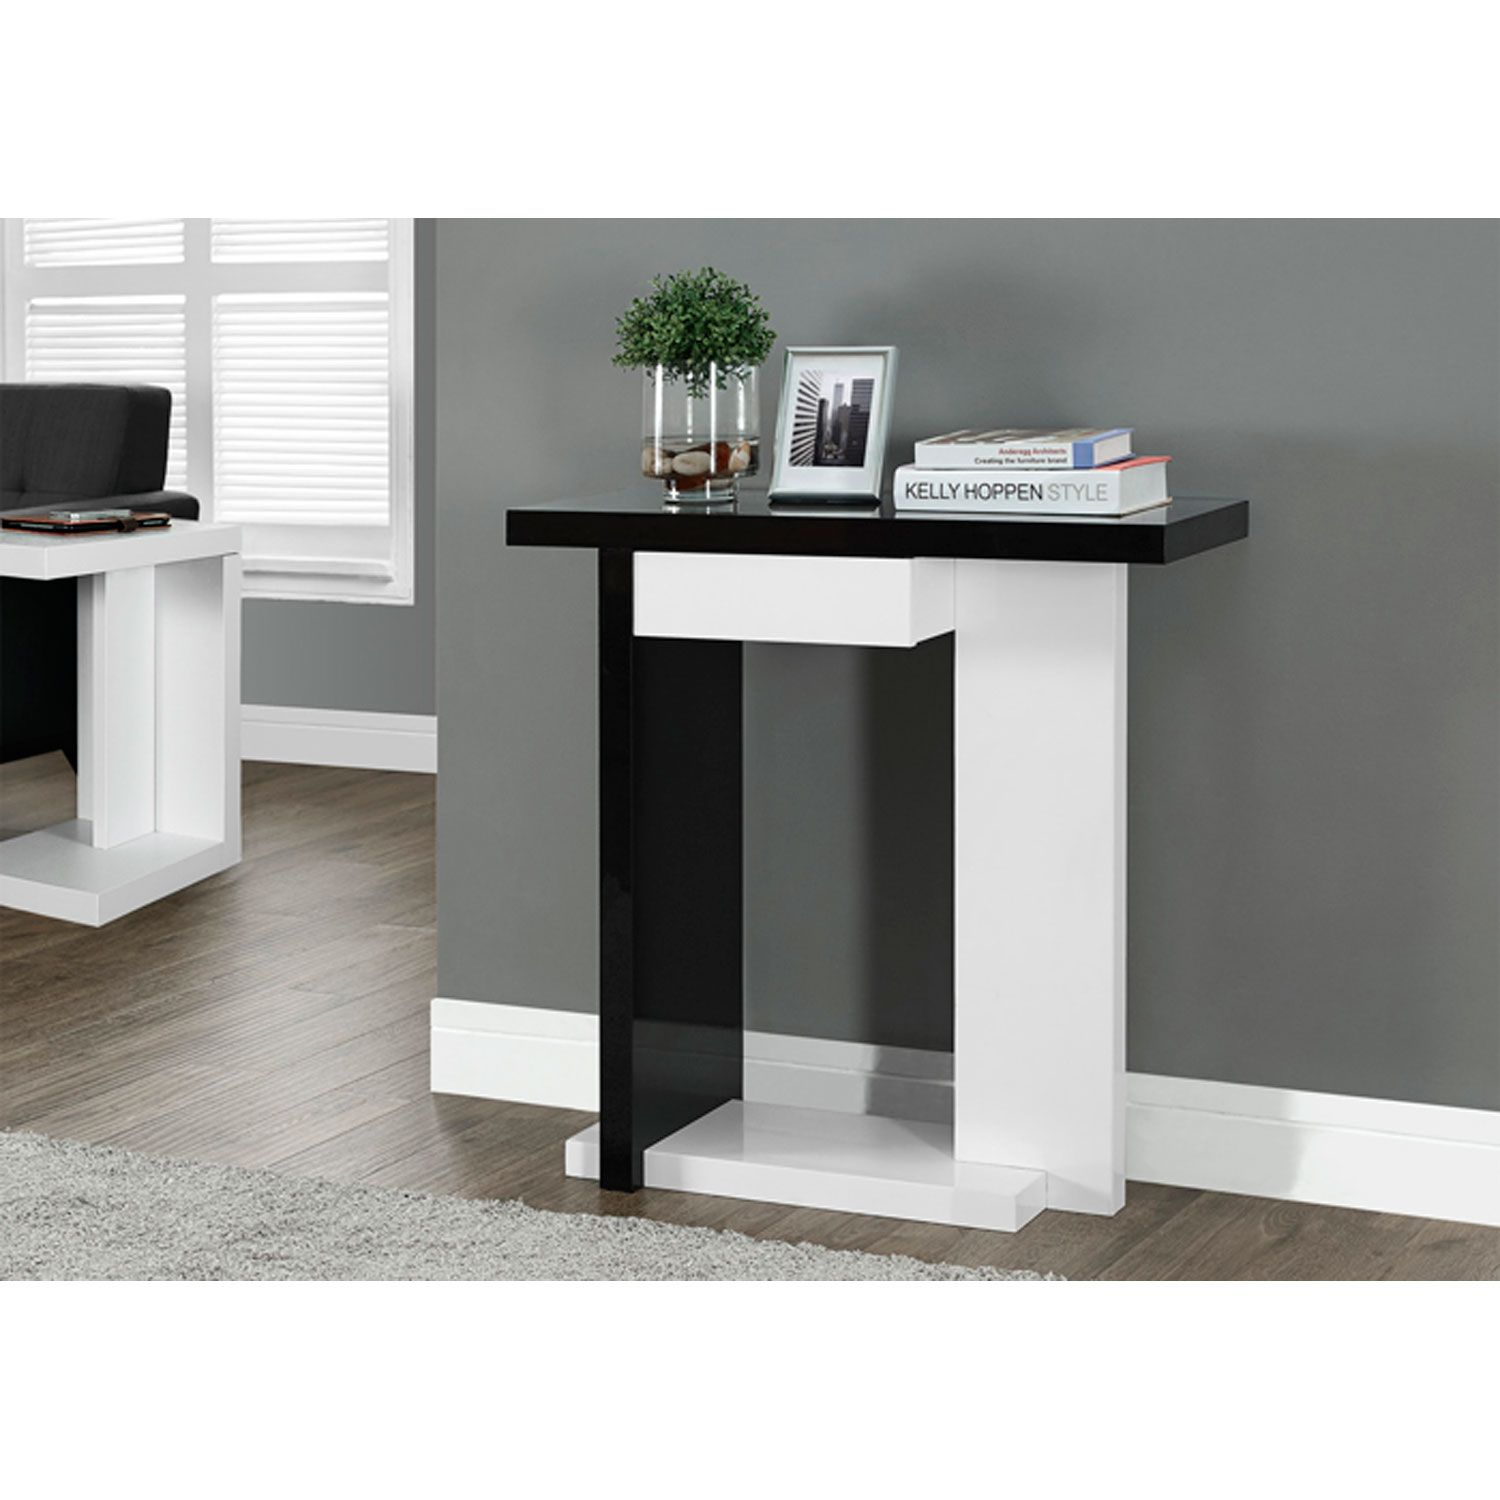 awesome corner accent table white small asda roll types hire top nutrition wood flavor farmhouse whiteboard dark background round grey definitio spectrum cloth wine legs diy